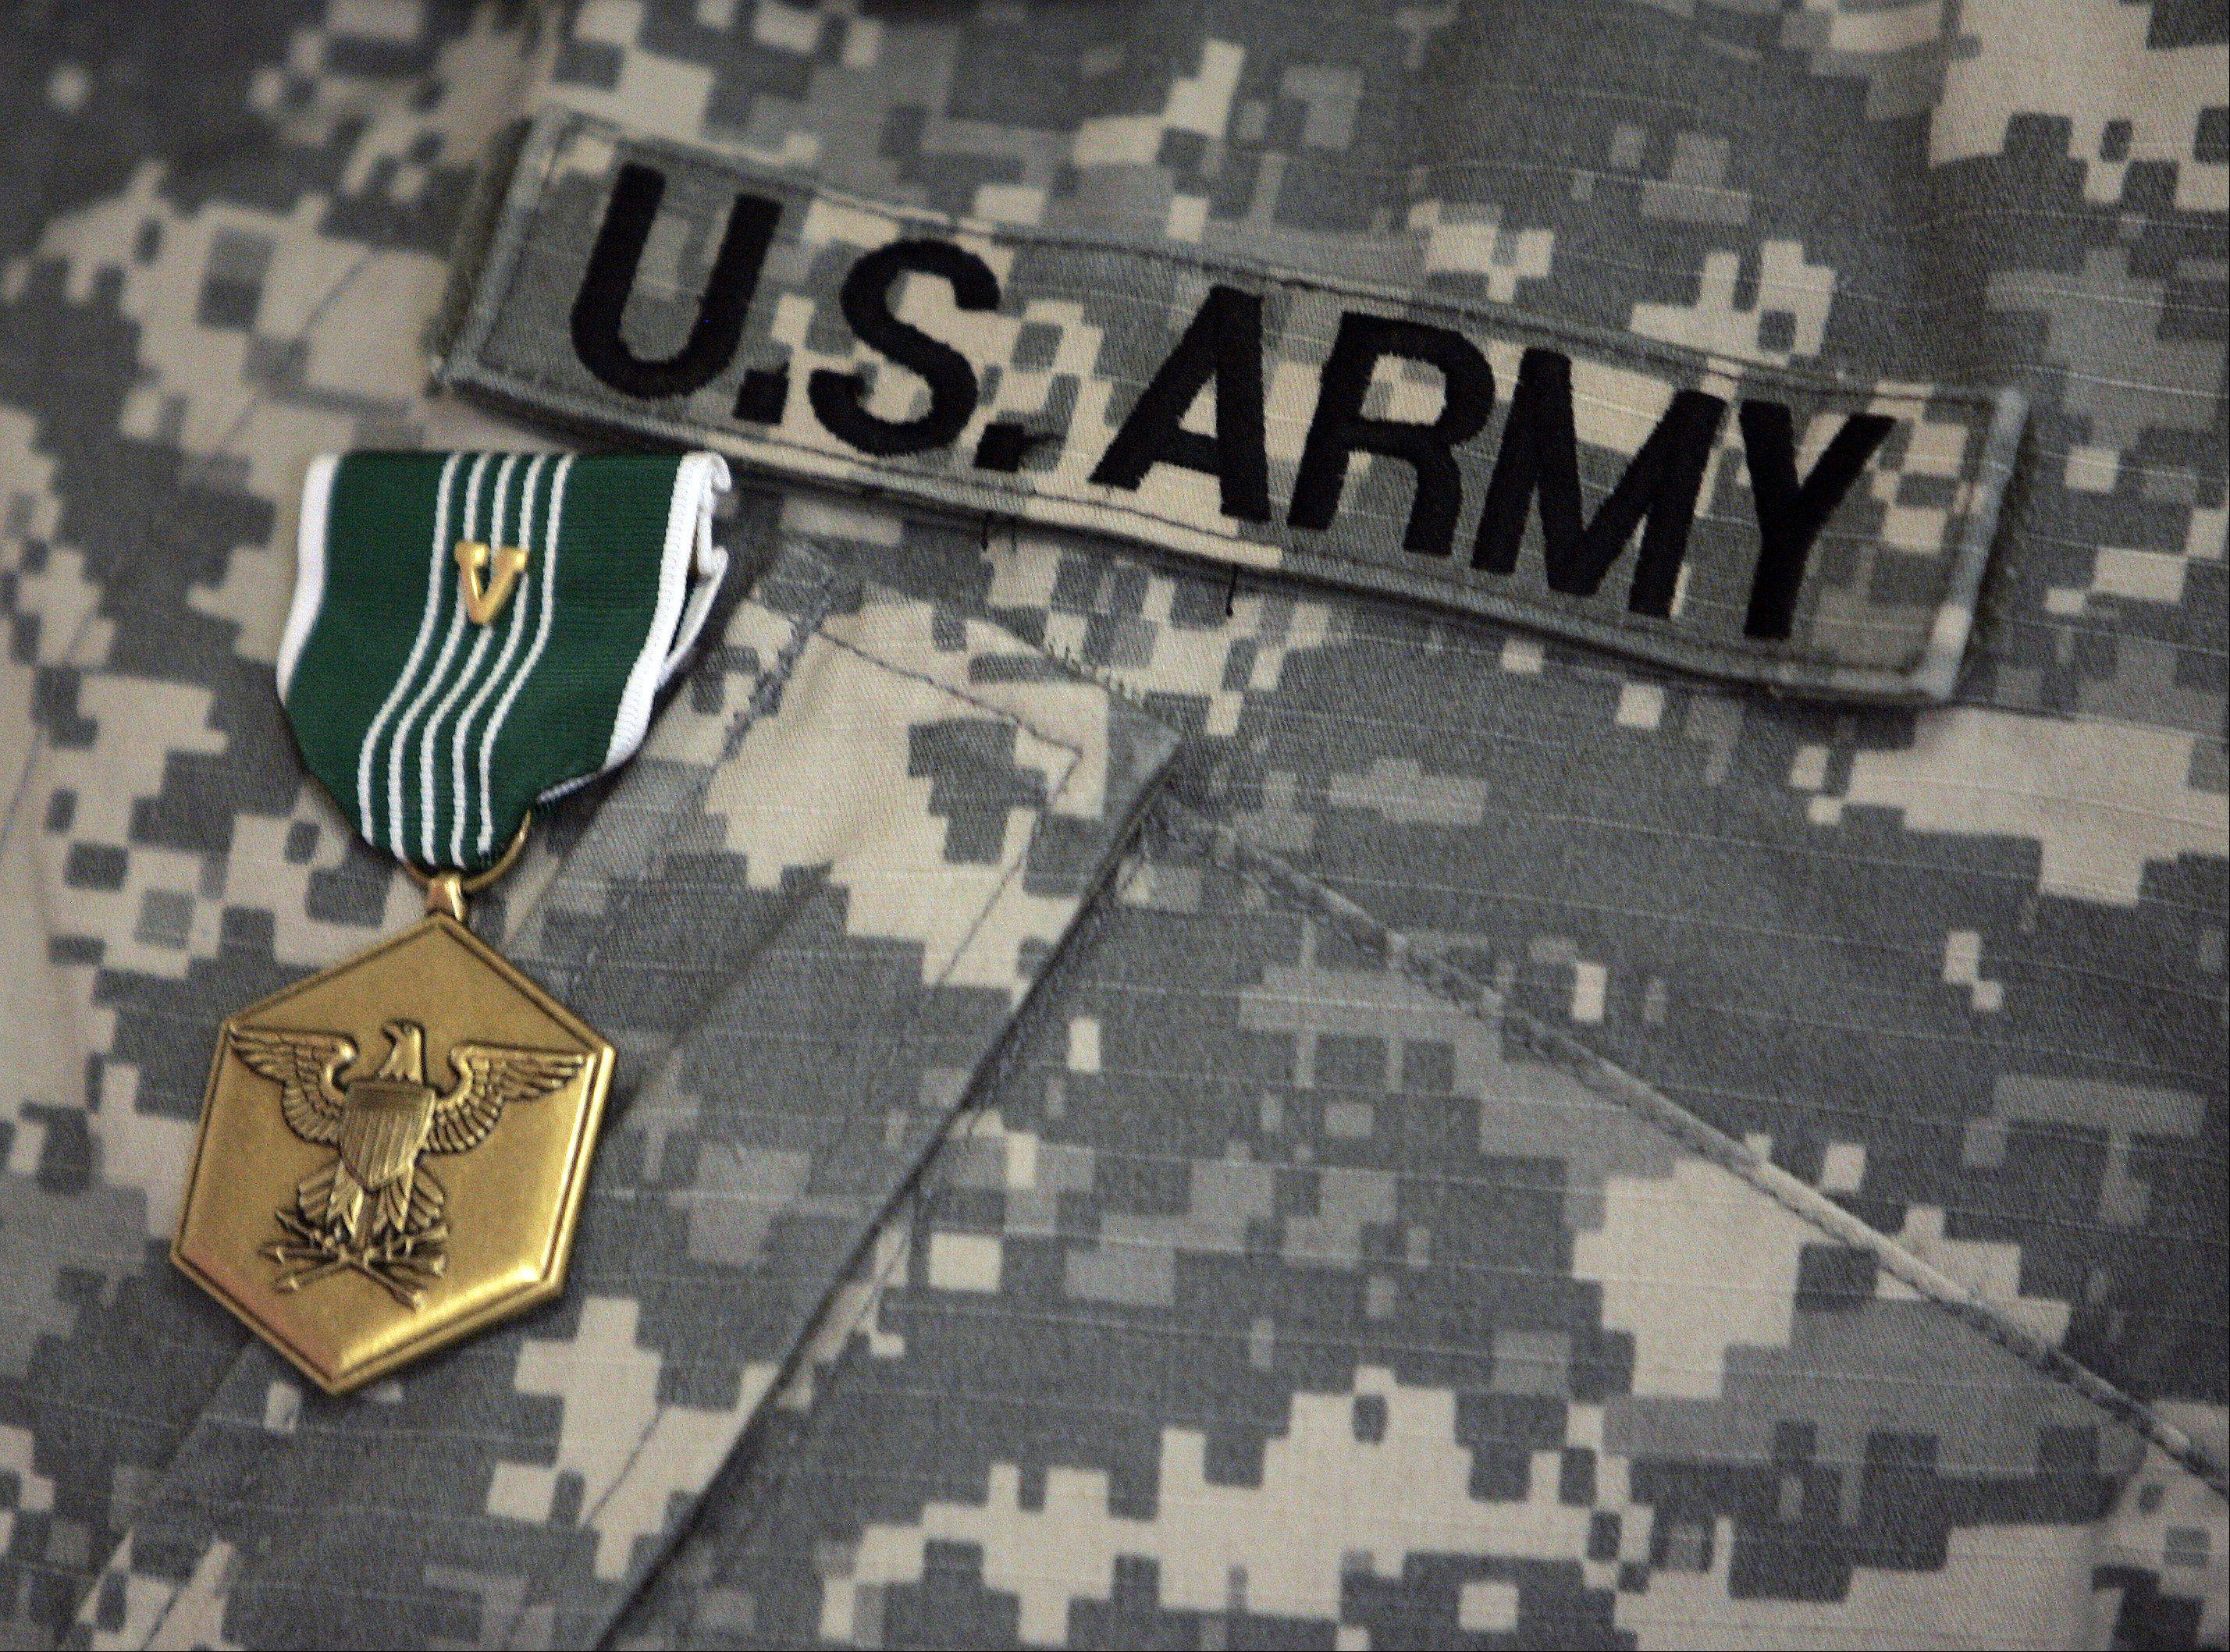 The Army Commendation Medal of Valor earned by retired U.S. Army Sgt. Michael Griffin of Carpentersville.